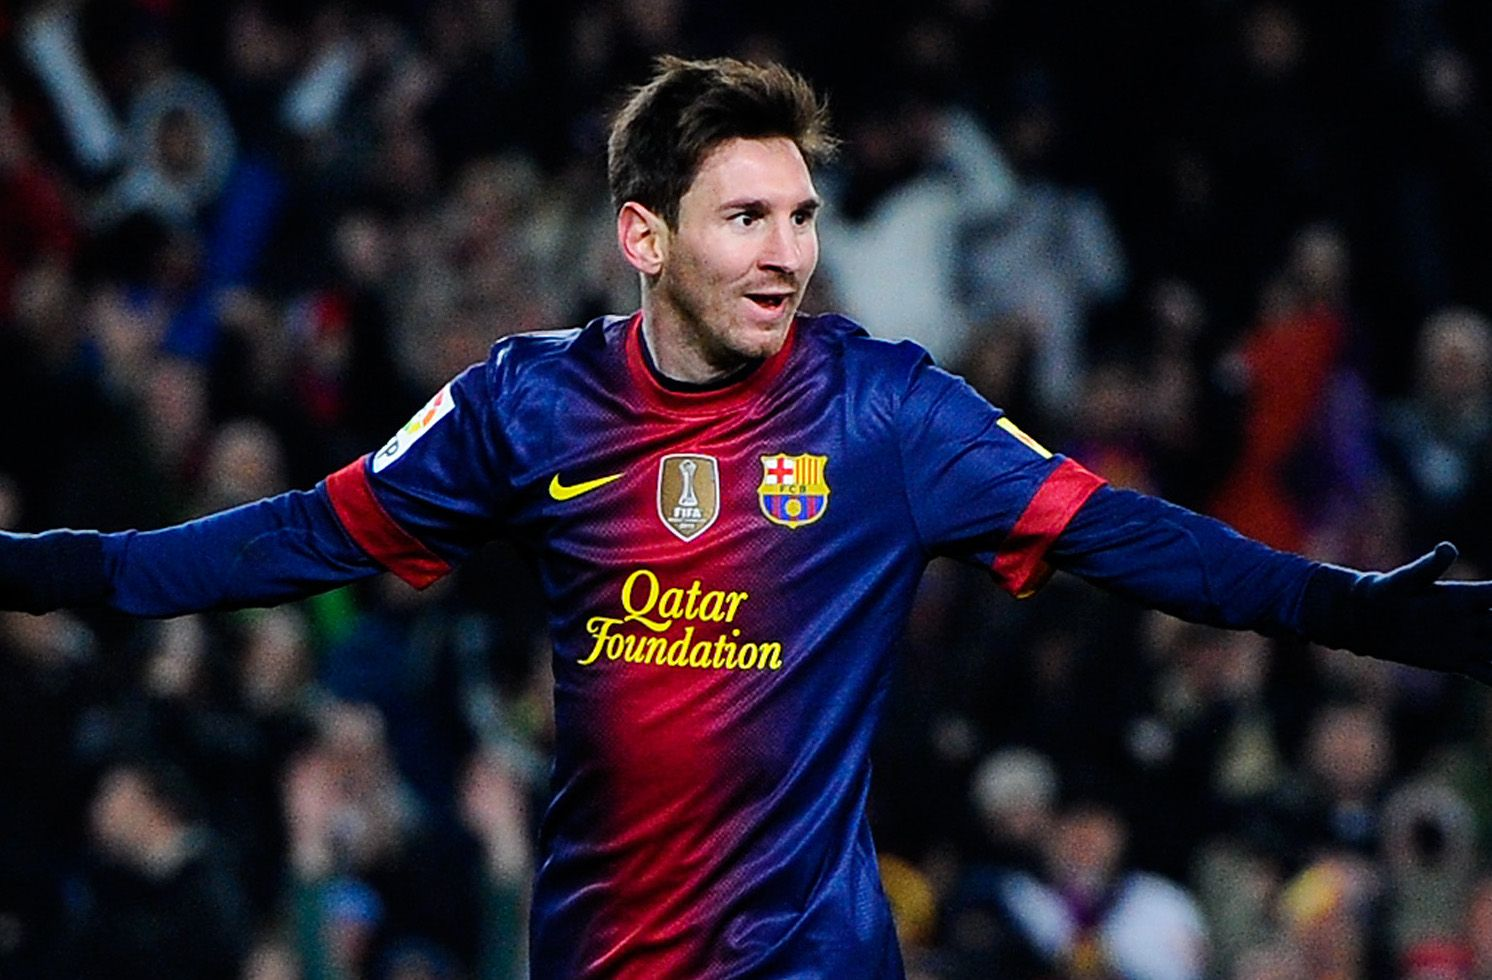 Pin By Homero Cifuentes On Things To Wear Lionel Messi Messi Sport Inspiration